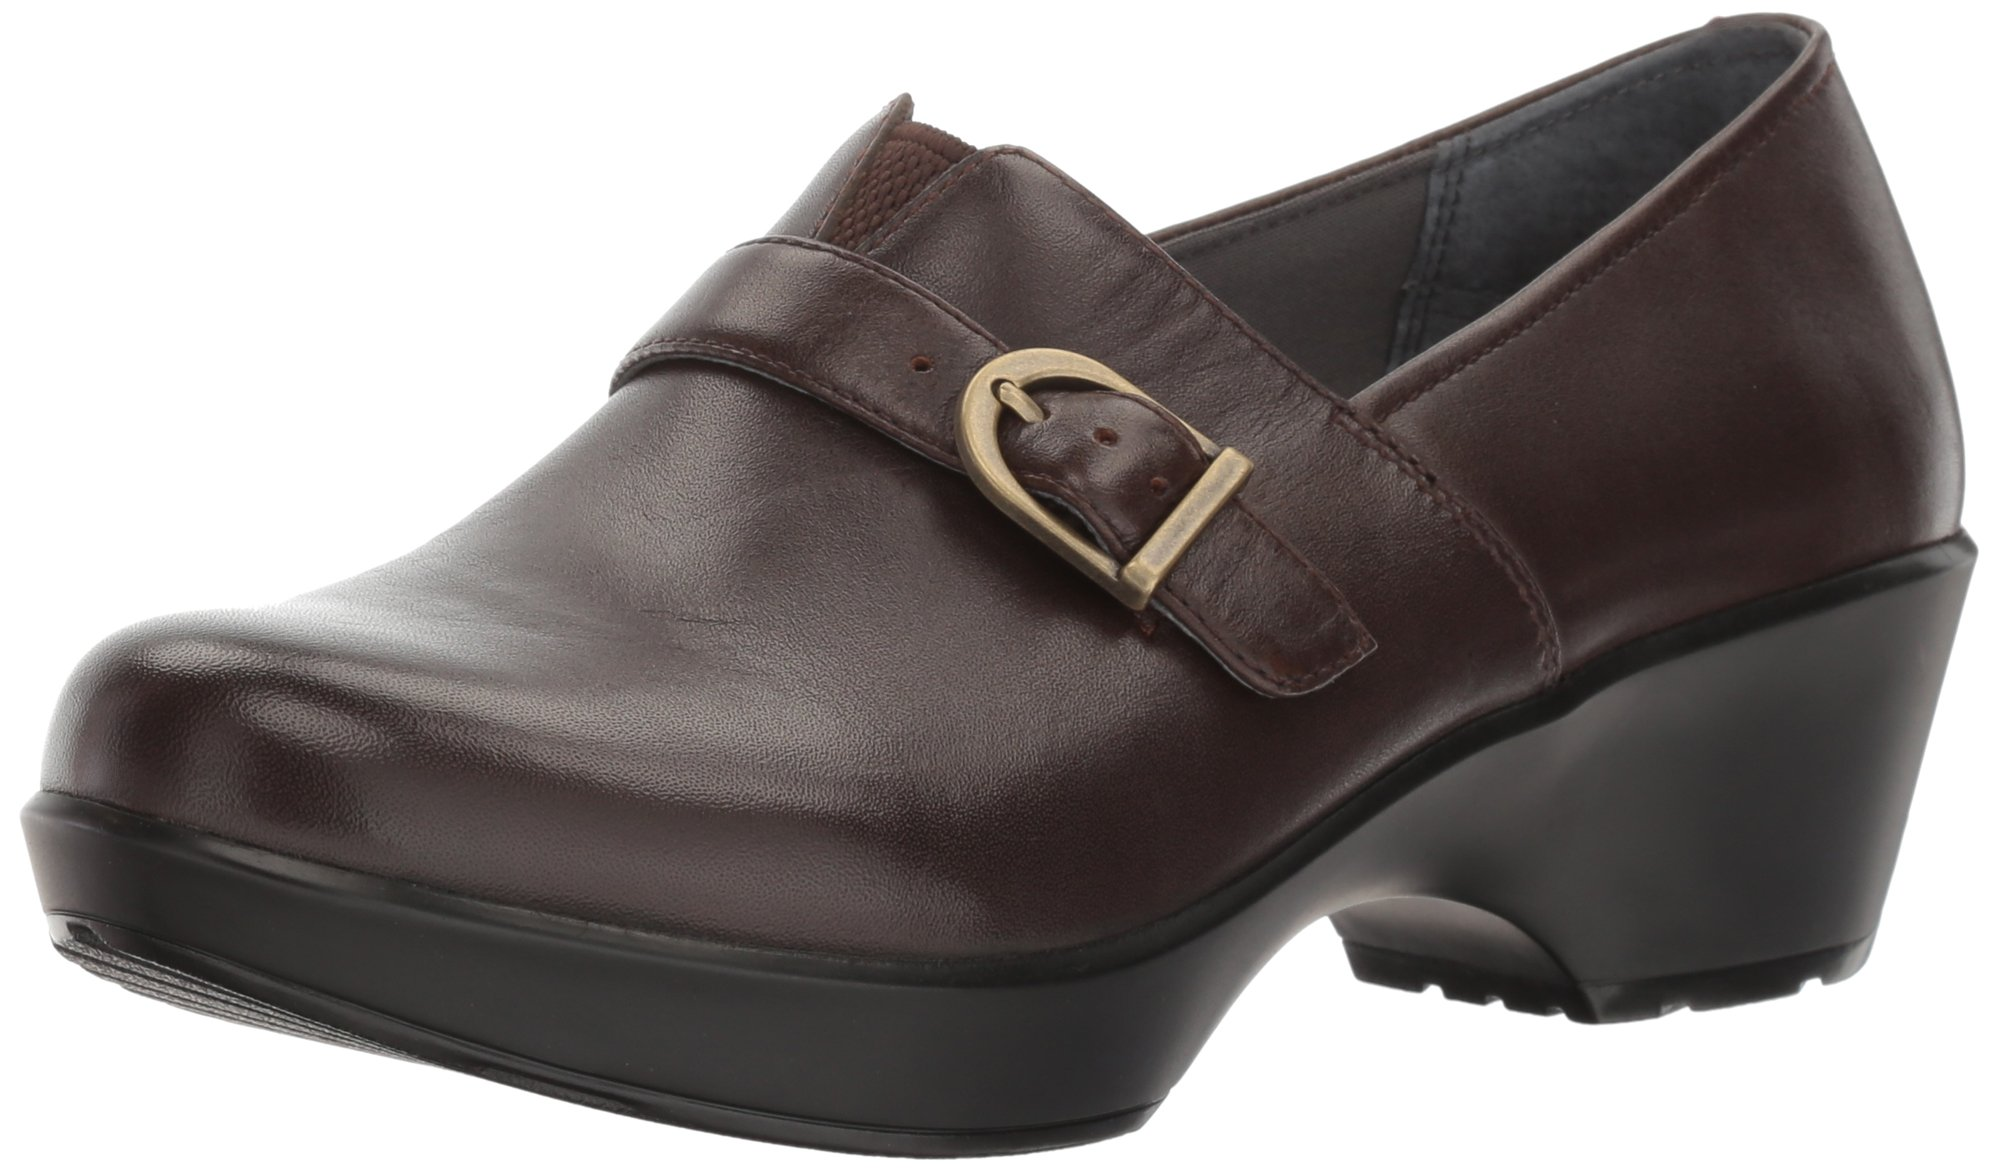 Dansko Women's Jane Clog, Chocolate Burnished Full Grain, 37 EU/6.5-7 M US